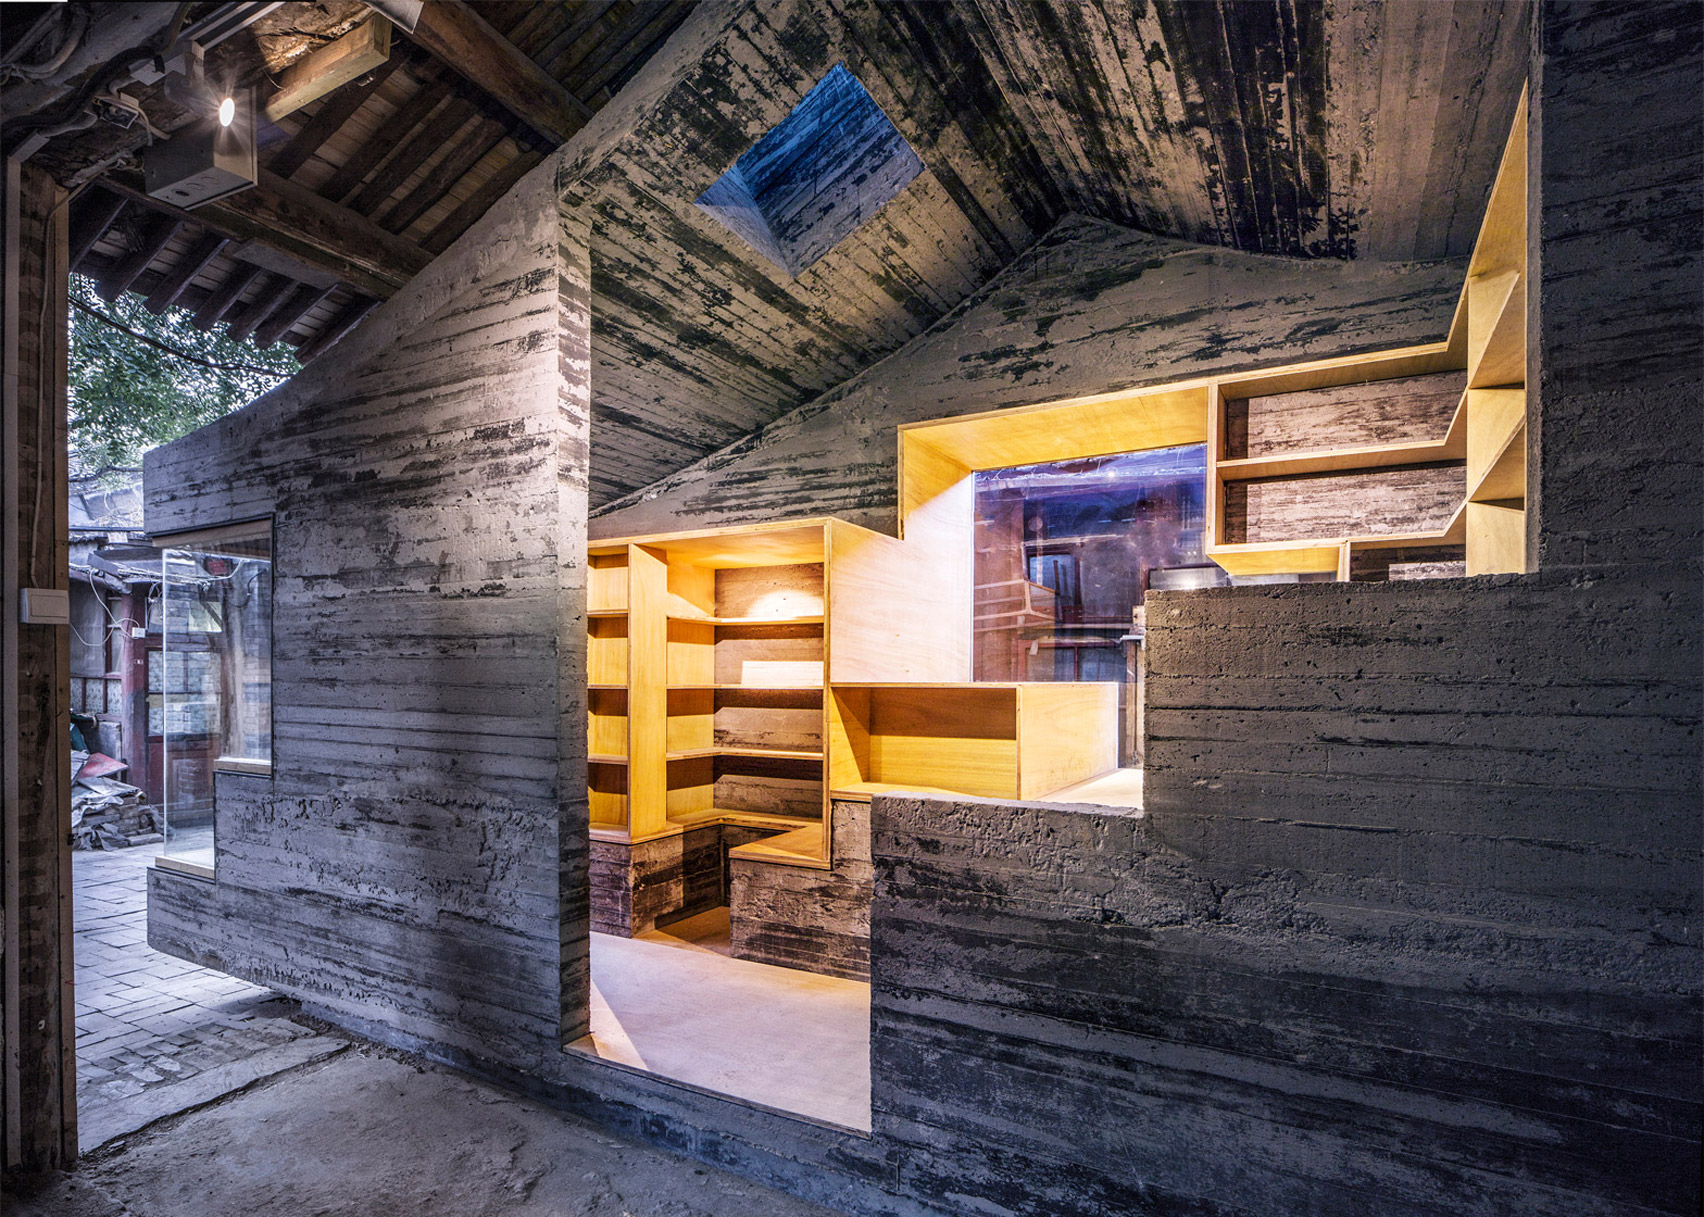 Cha'er Hutong Children's Library and Art Centre, Beijing, China by ZAO, standardarchitecture and Zhang Ke